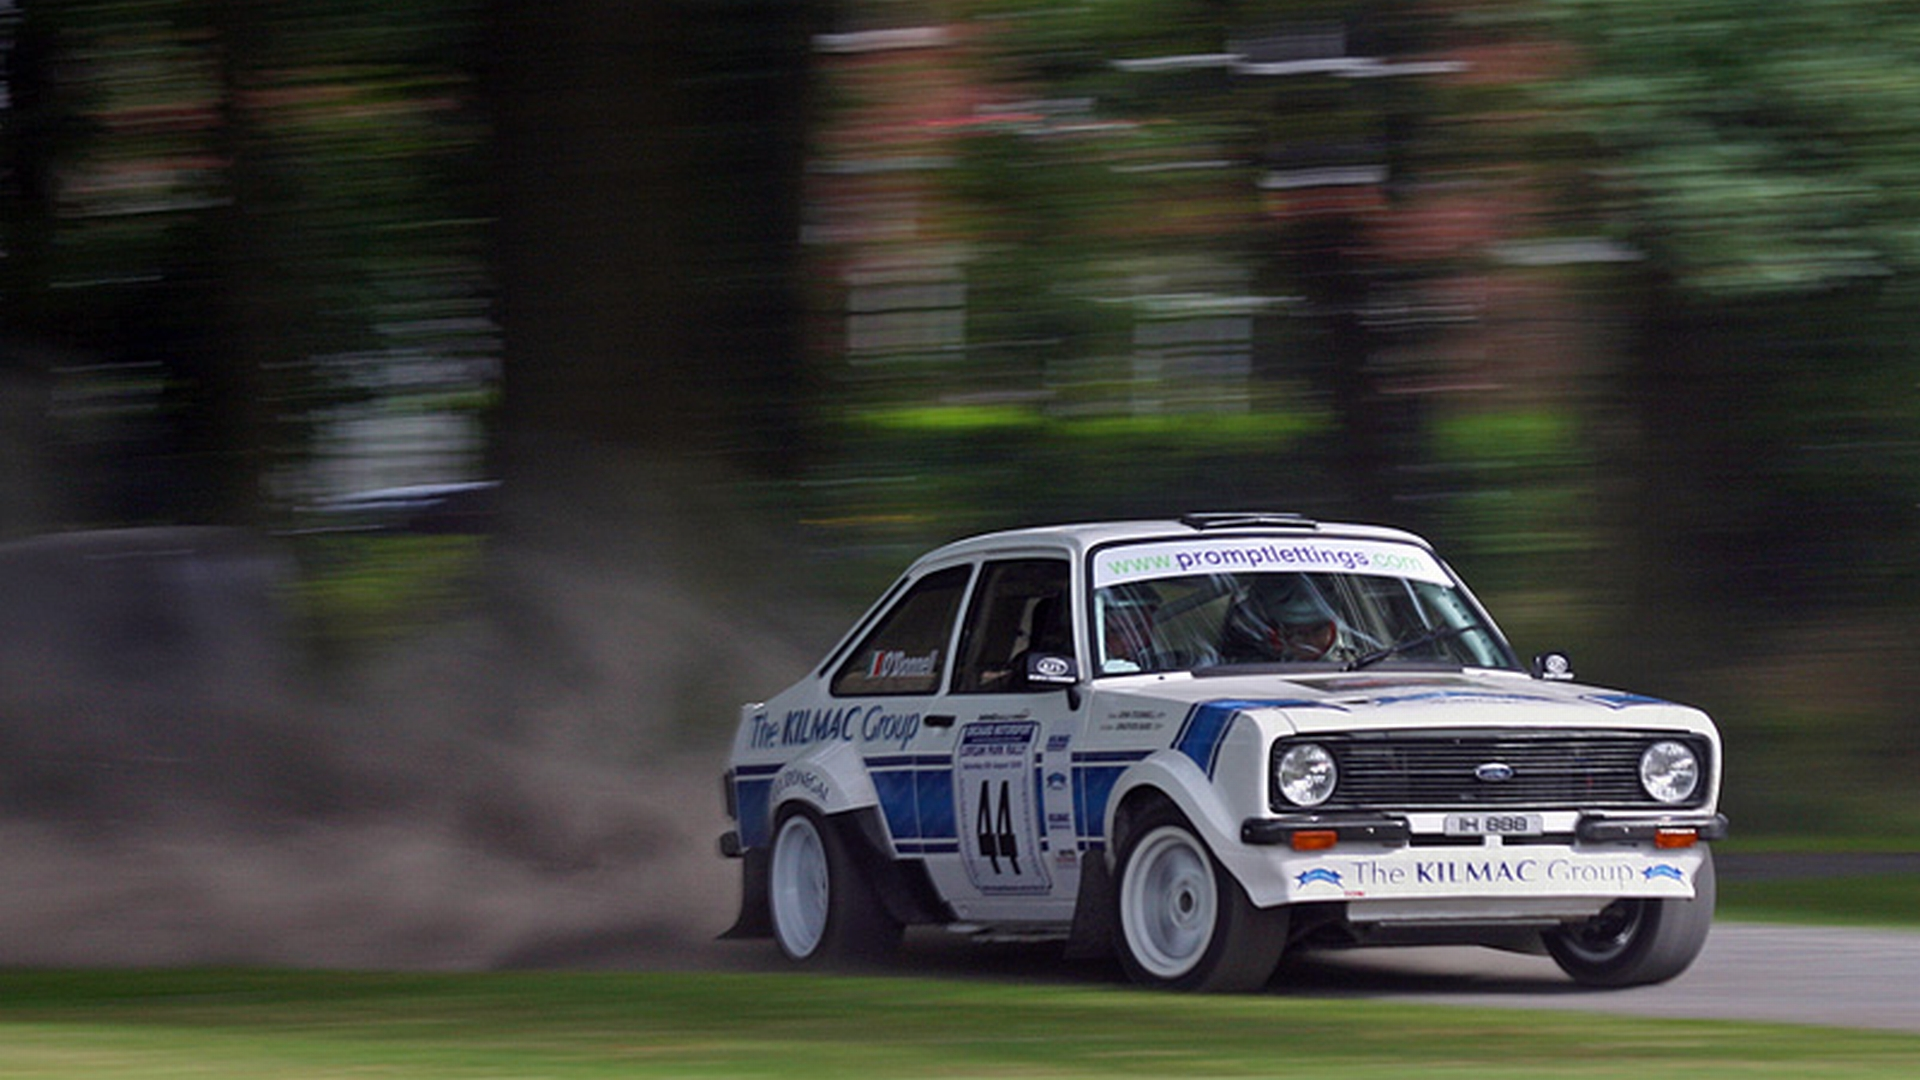 1920x1080 - Ford Escort Wallpapers 2